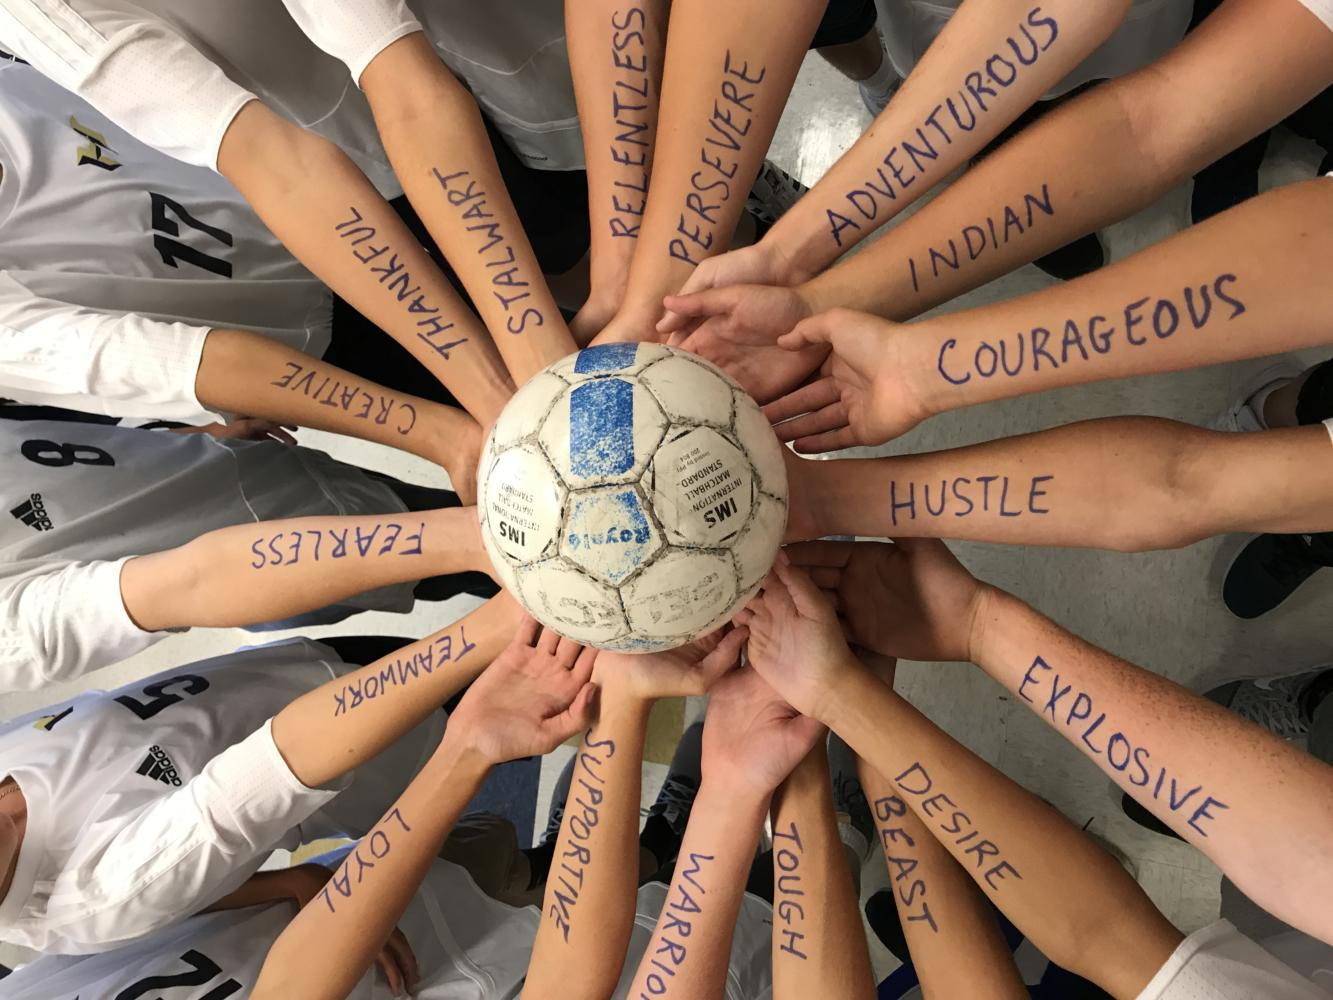 Inspired by the words on their arms, the freshman soccer team comes back from 0-3 halftime score.